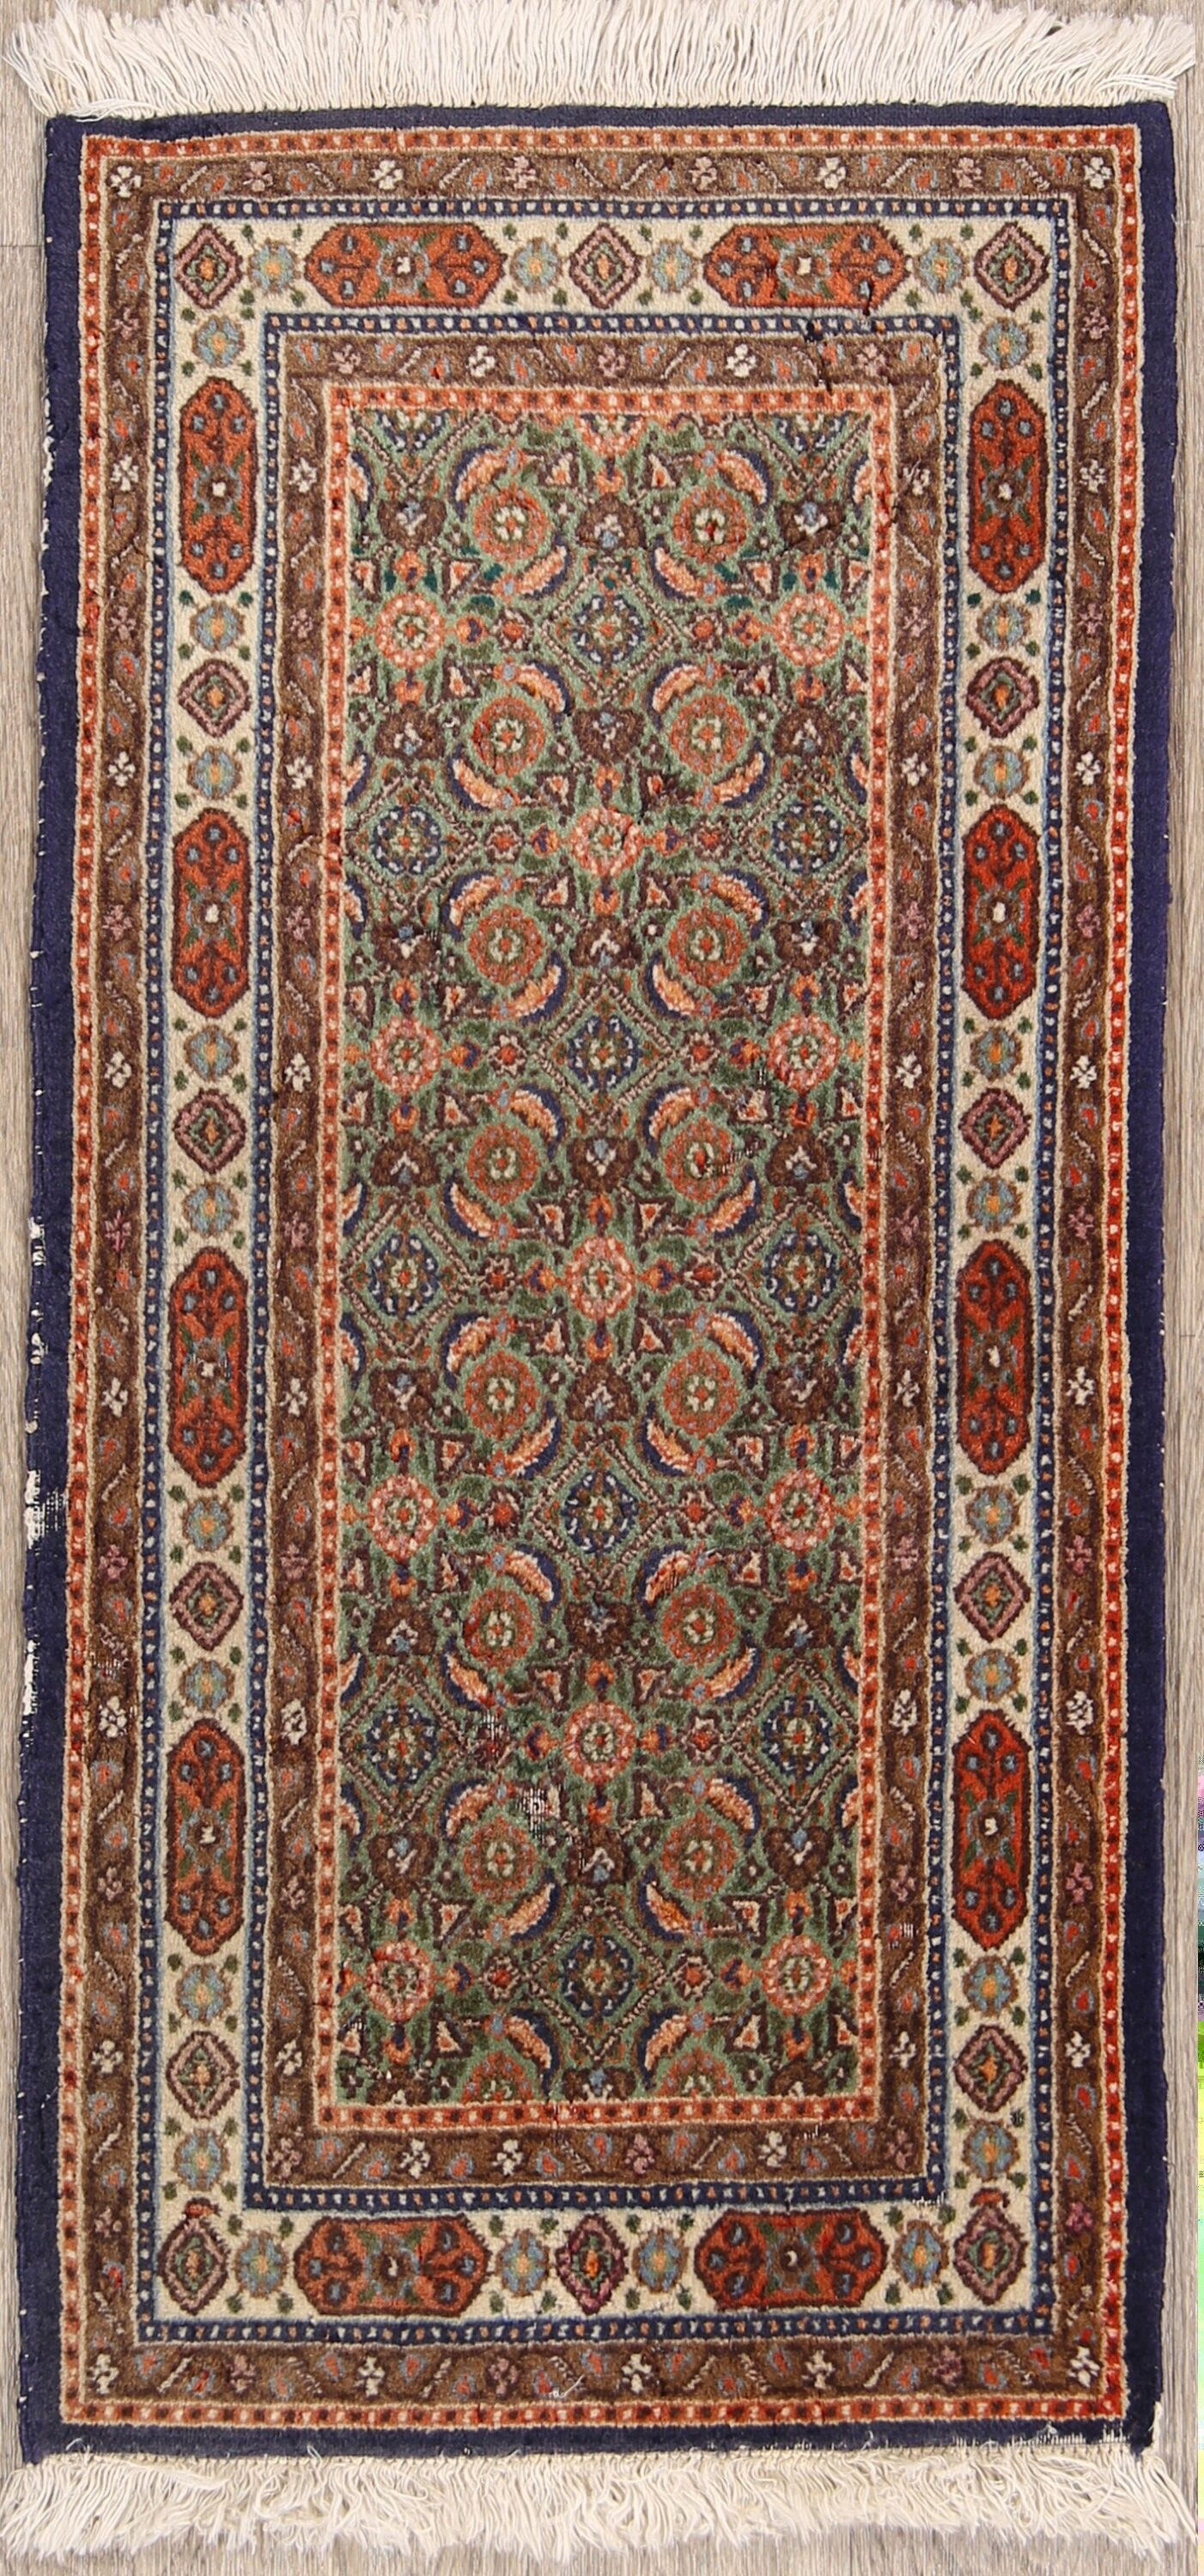 One-of-a-Kind Geometric Medallion Mood Vintage Persian Hand-Knotted 1'8